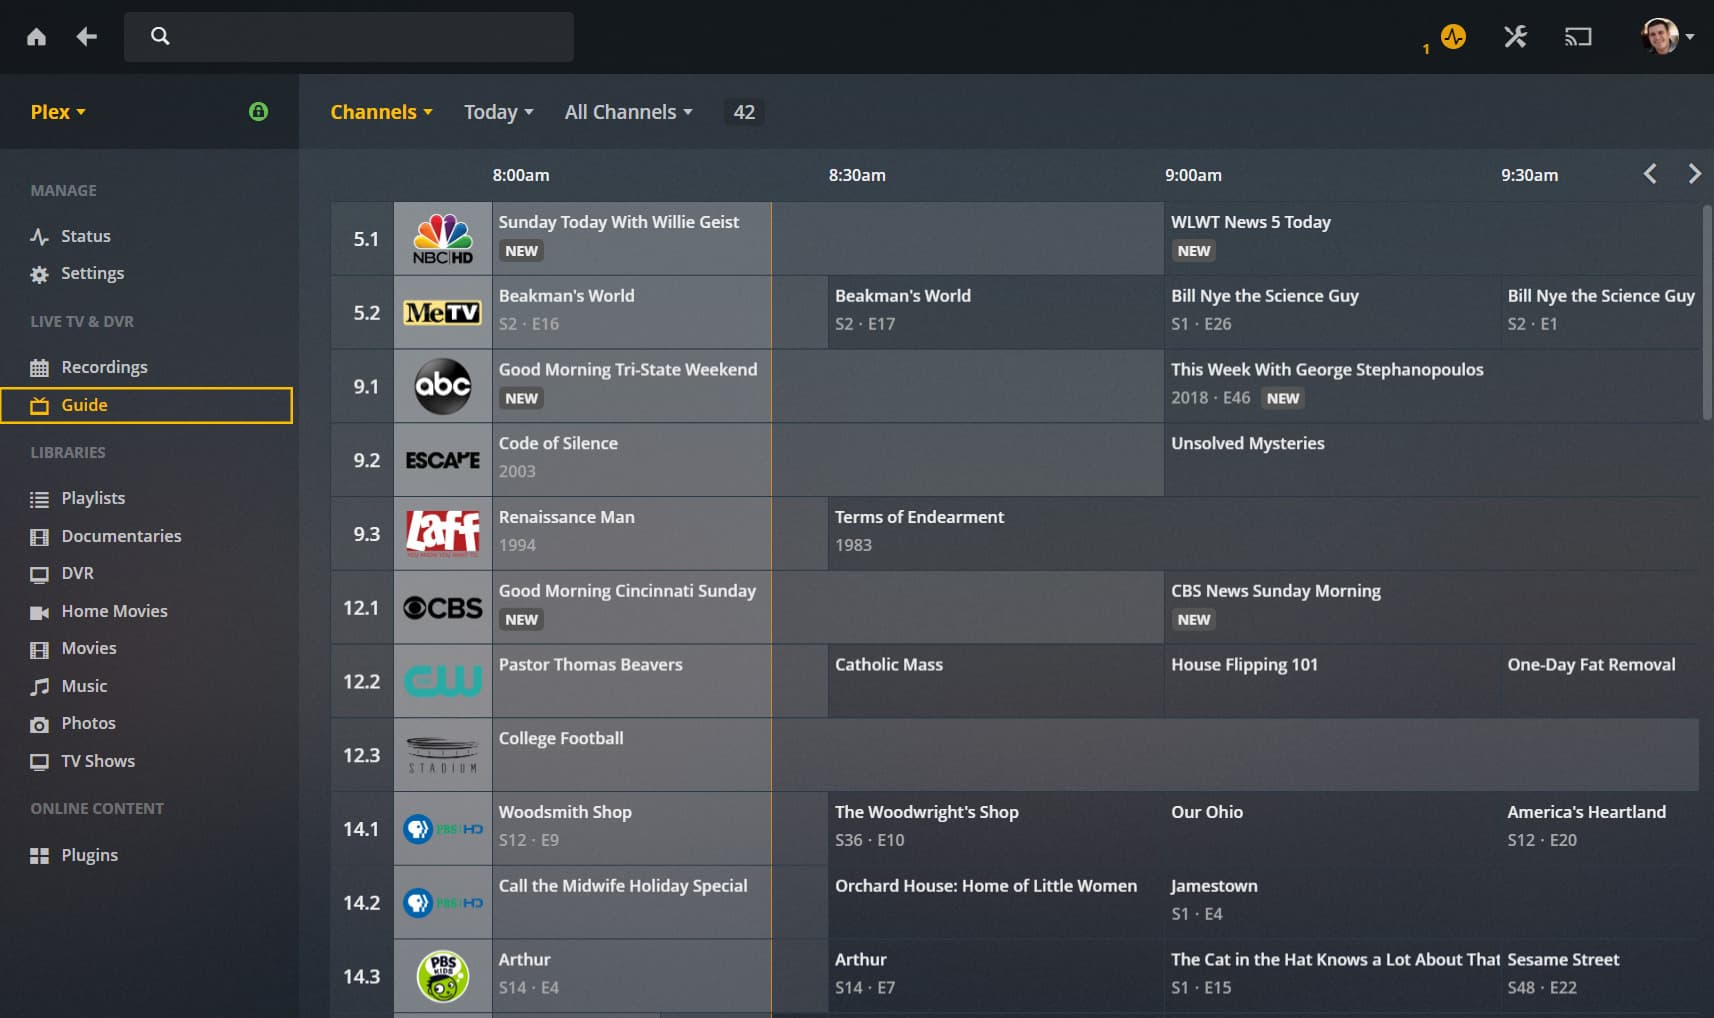 Plex Live TV & DVR: An Imperfect But Essential Tool for Cord